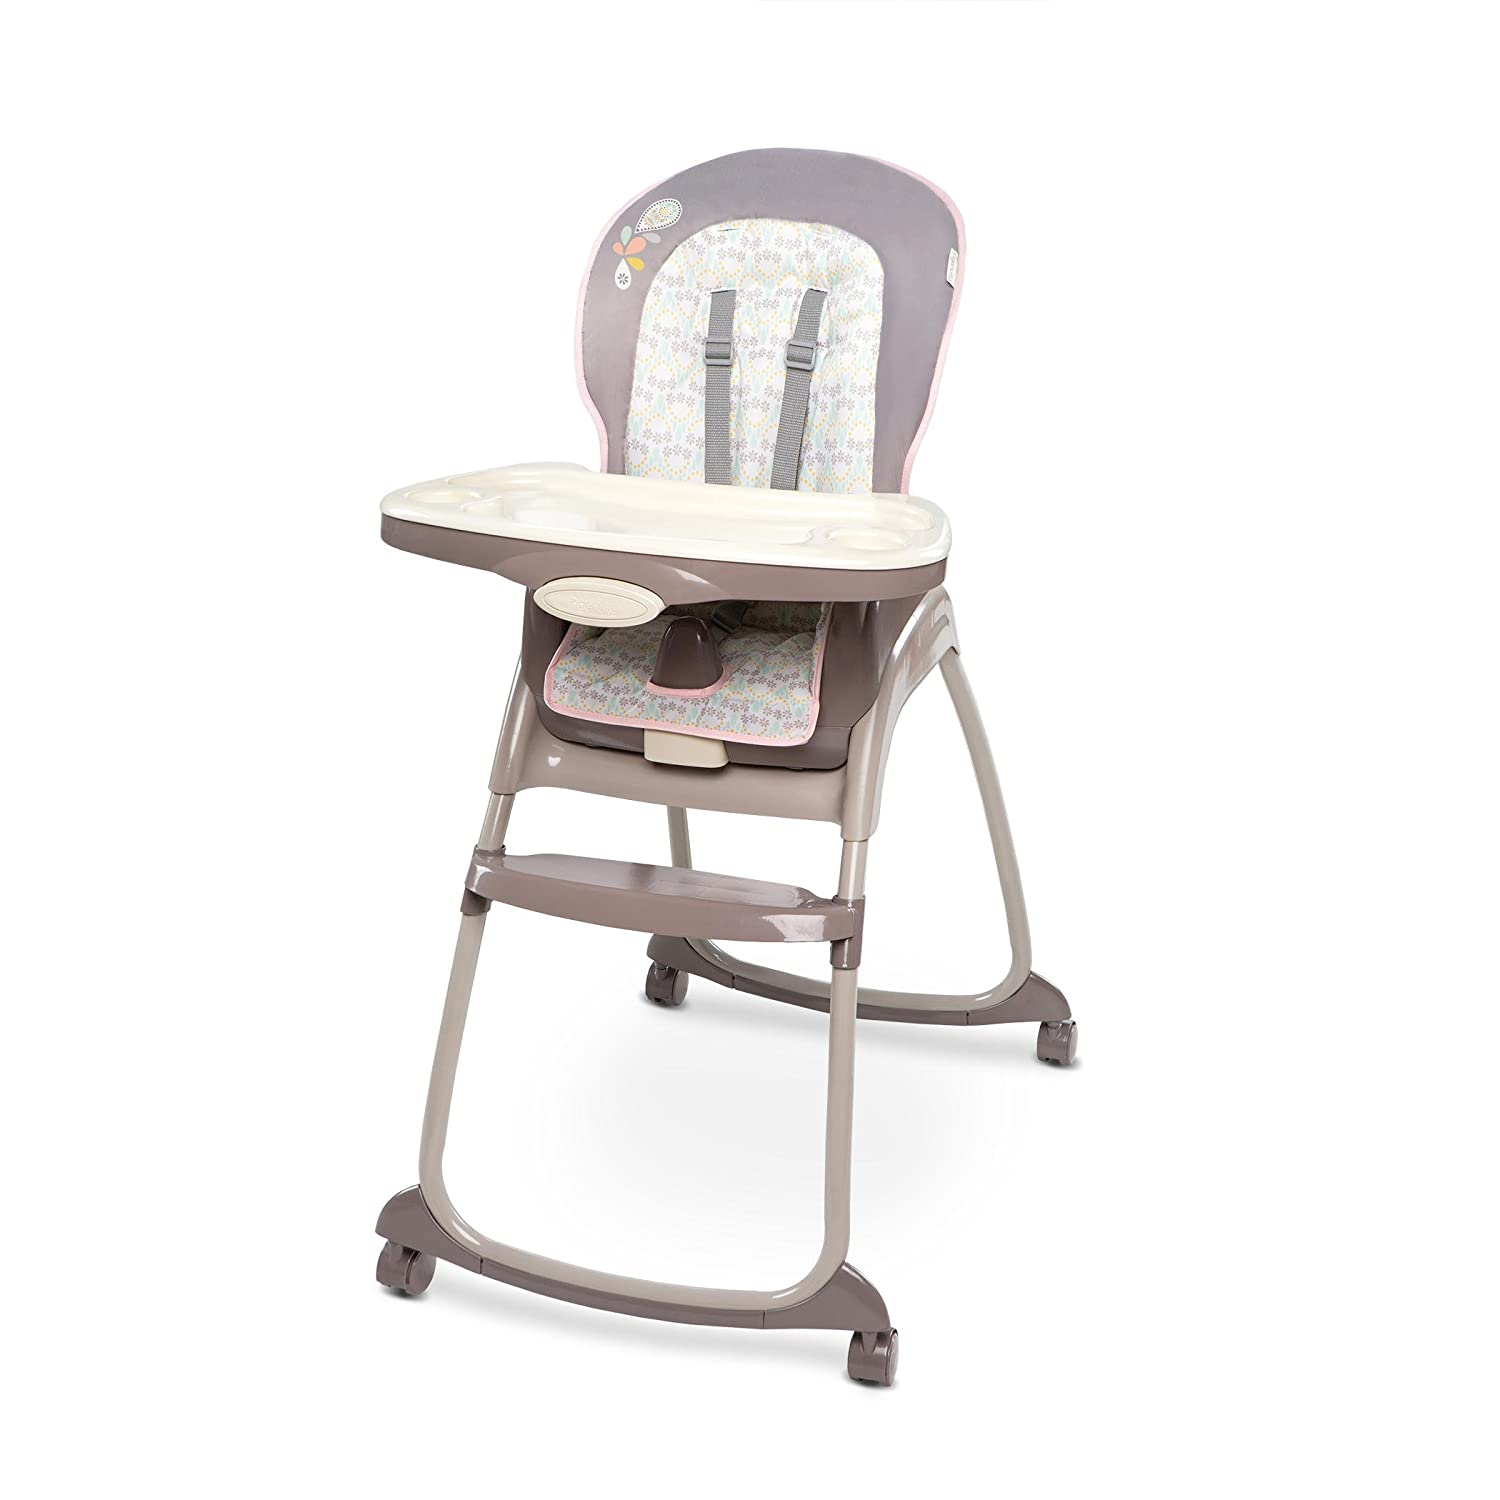 Ingenuity Trio 3-in-1 High Chair, Deluxe Piper KidsII 60351-1-W11